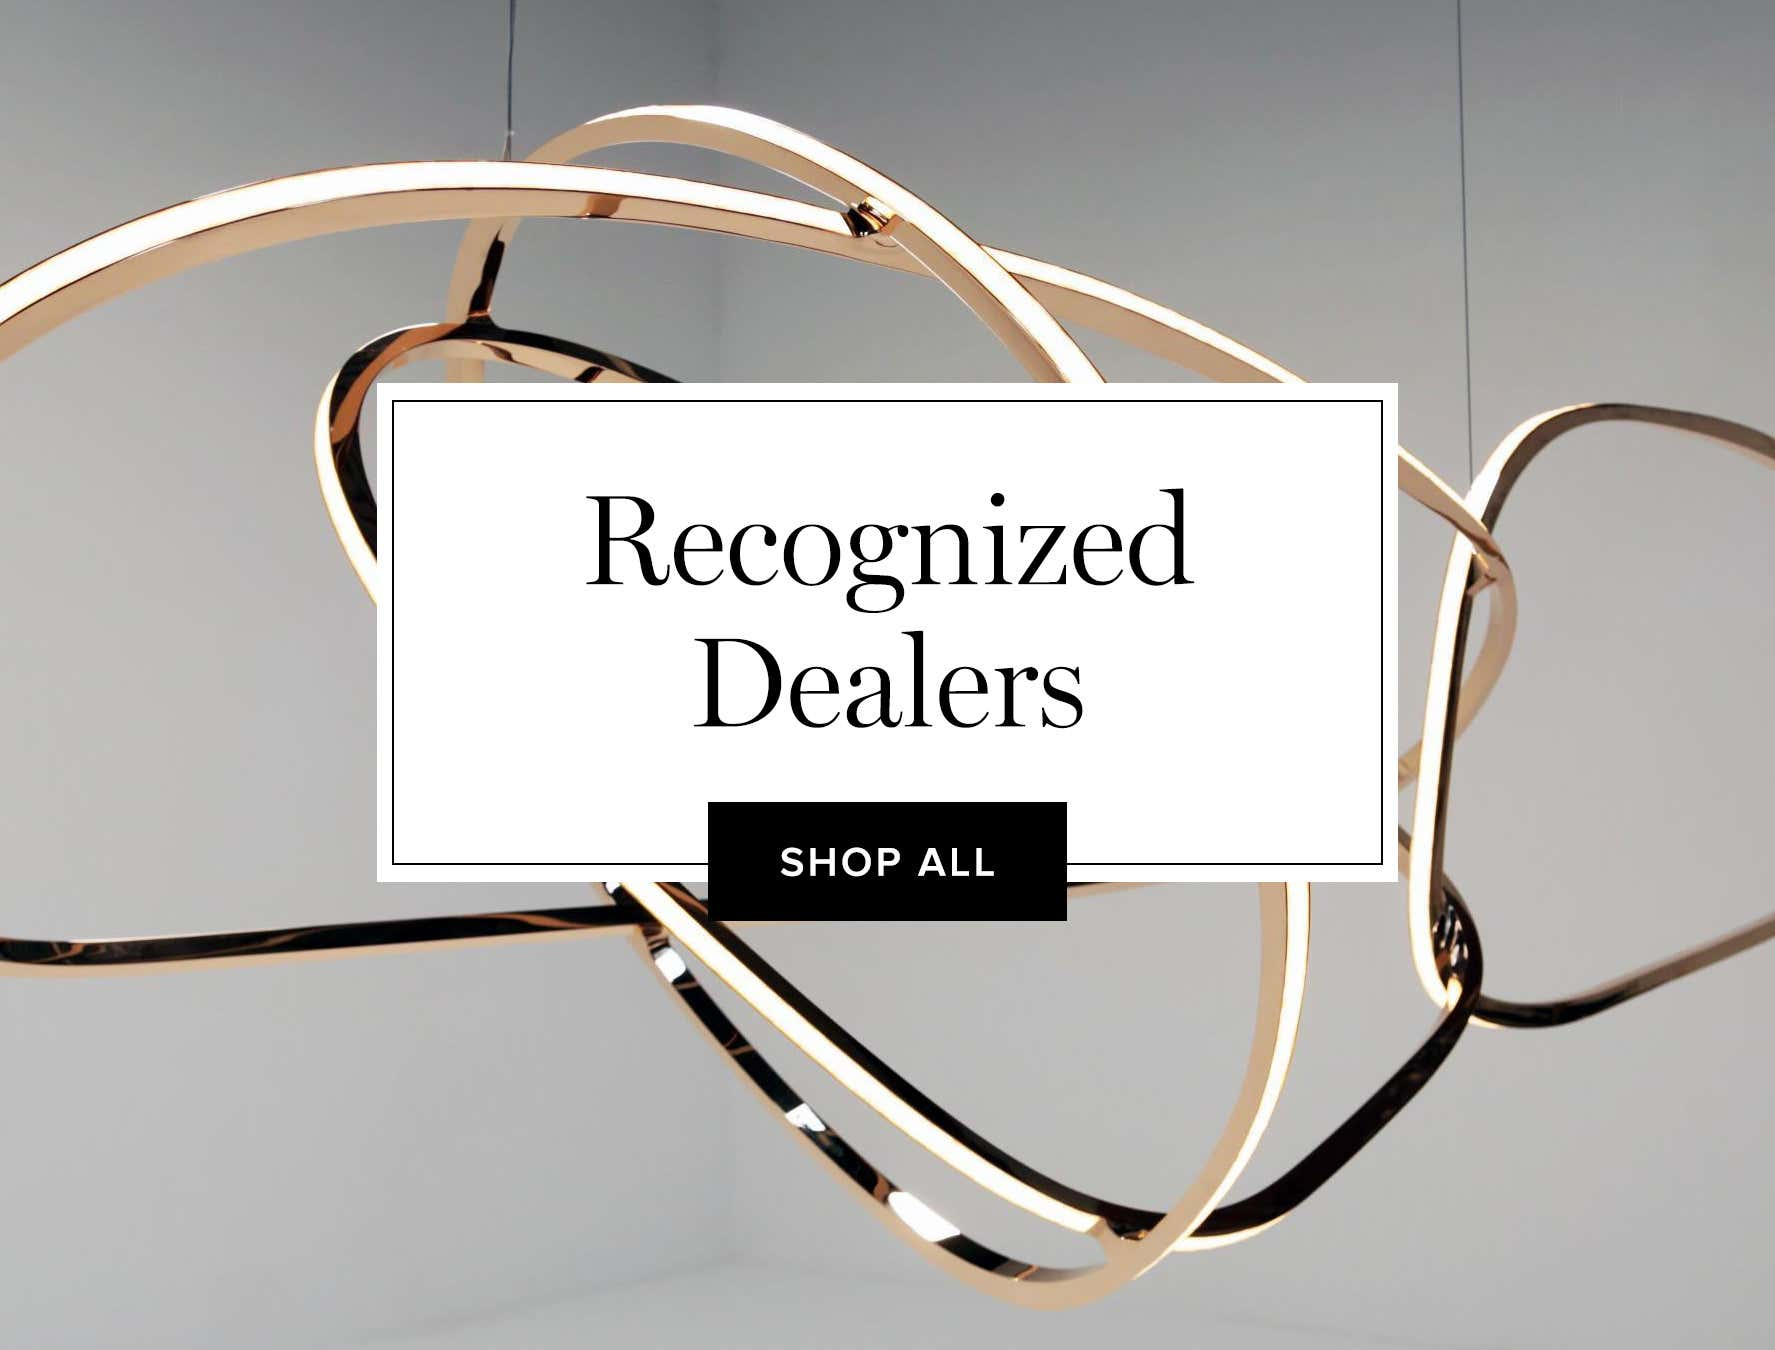 Recognized Dealers